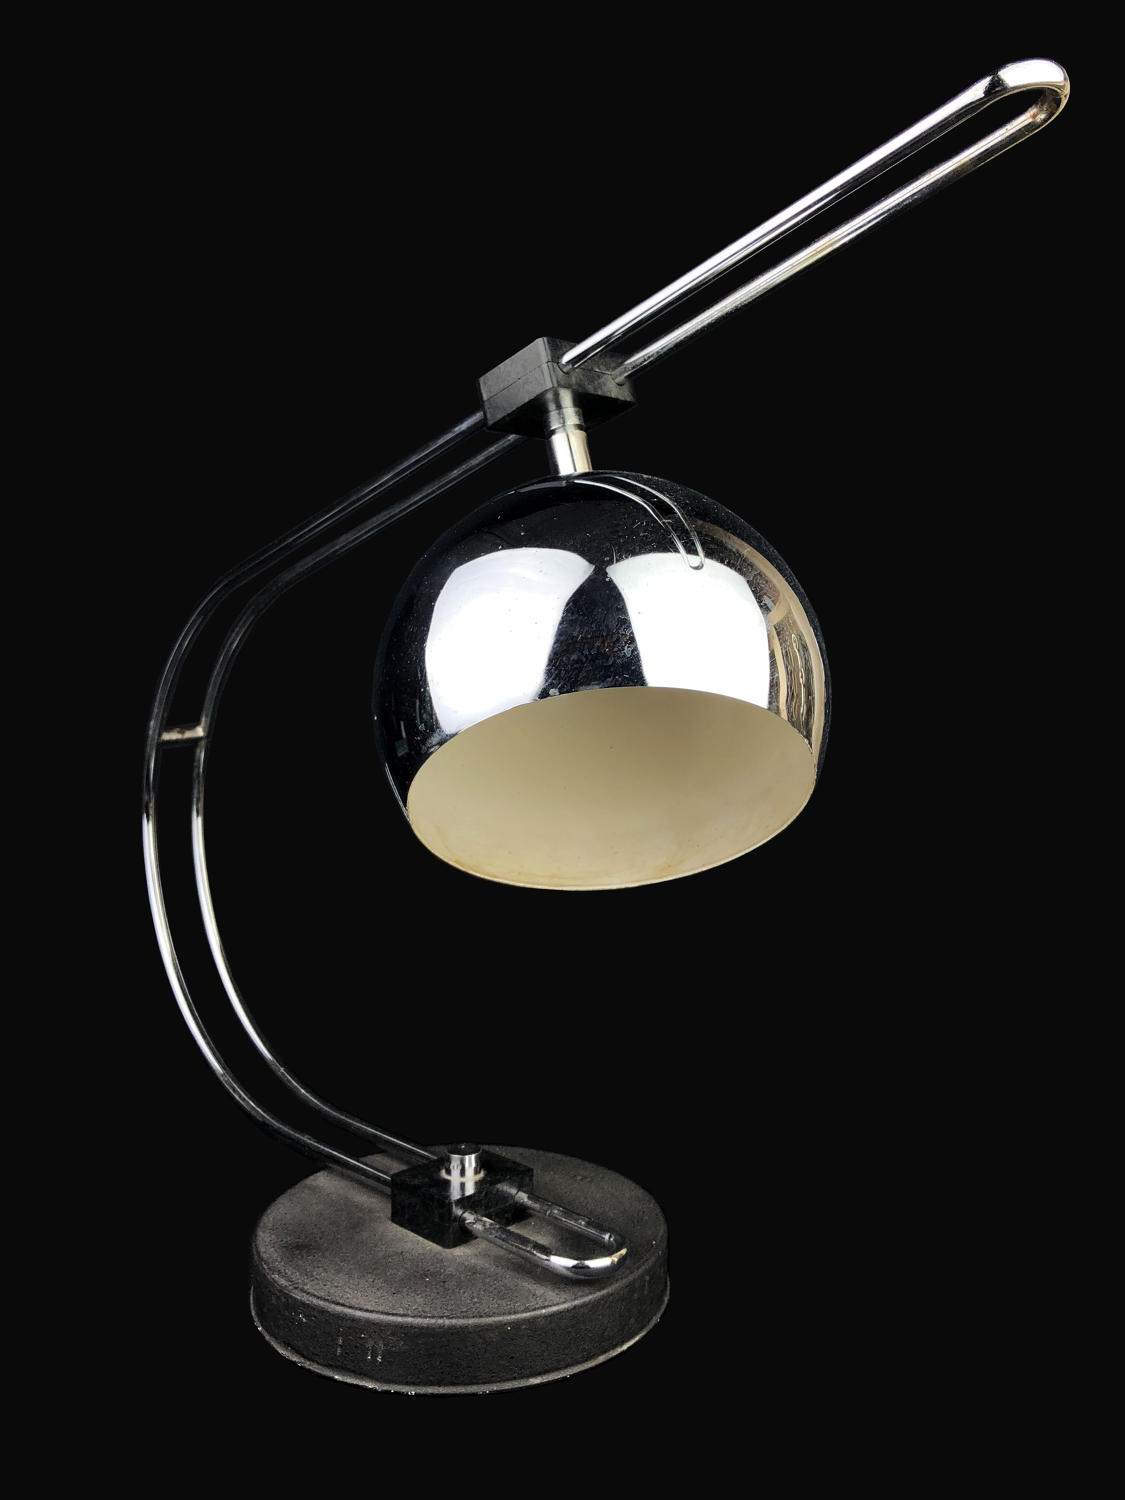 A vintage chrome table lamp